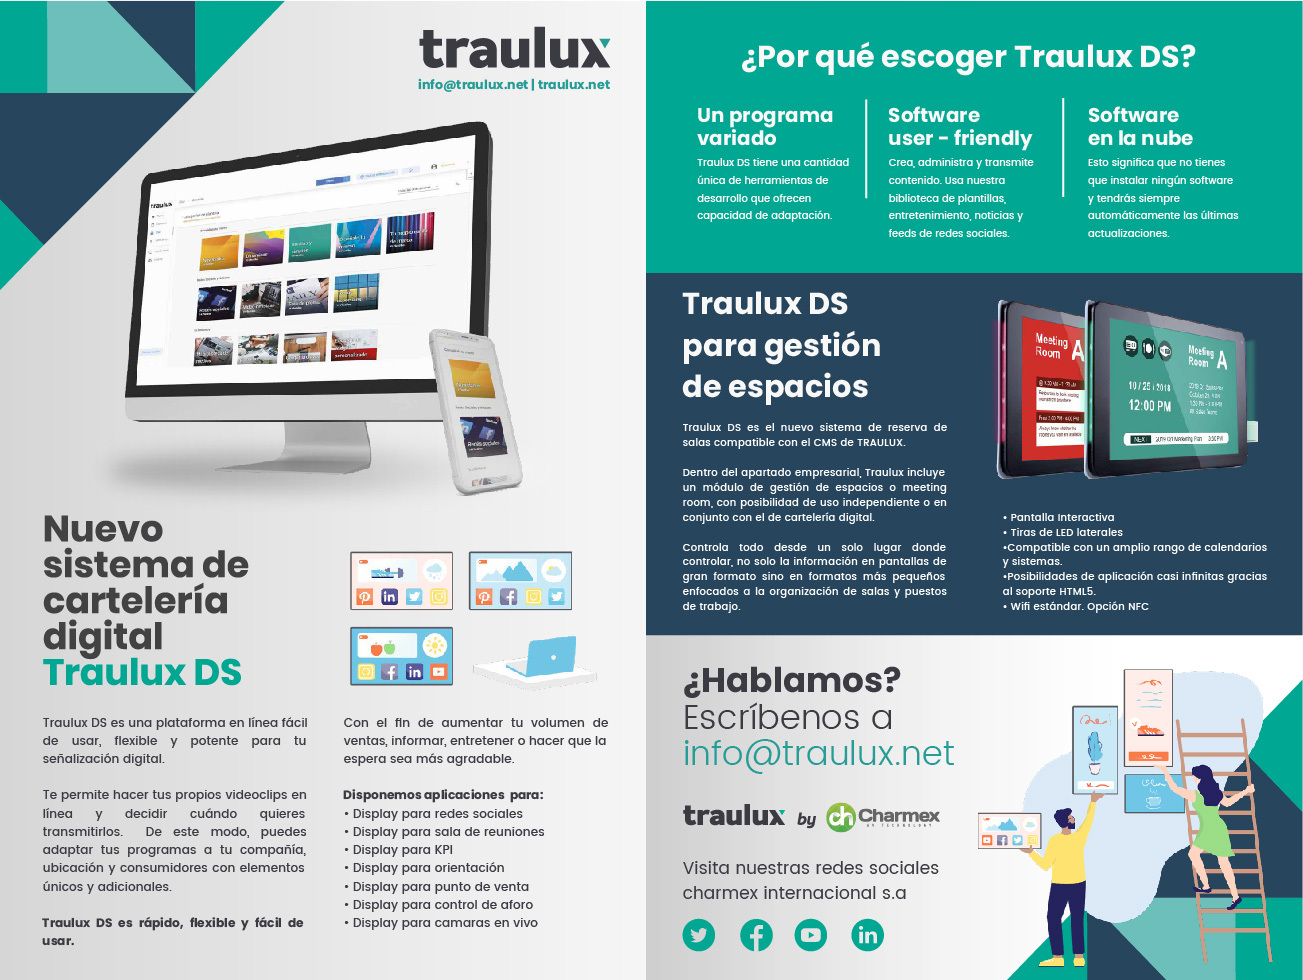 Traulux DS: Software as a Service